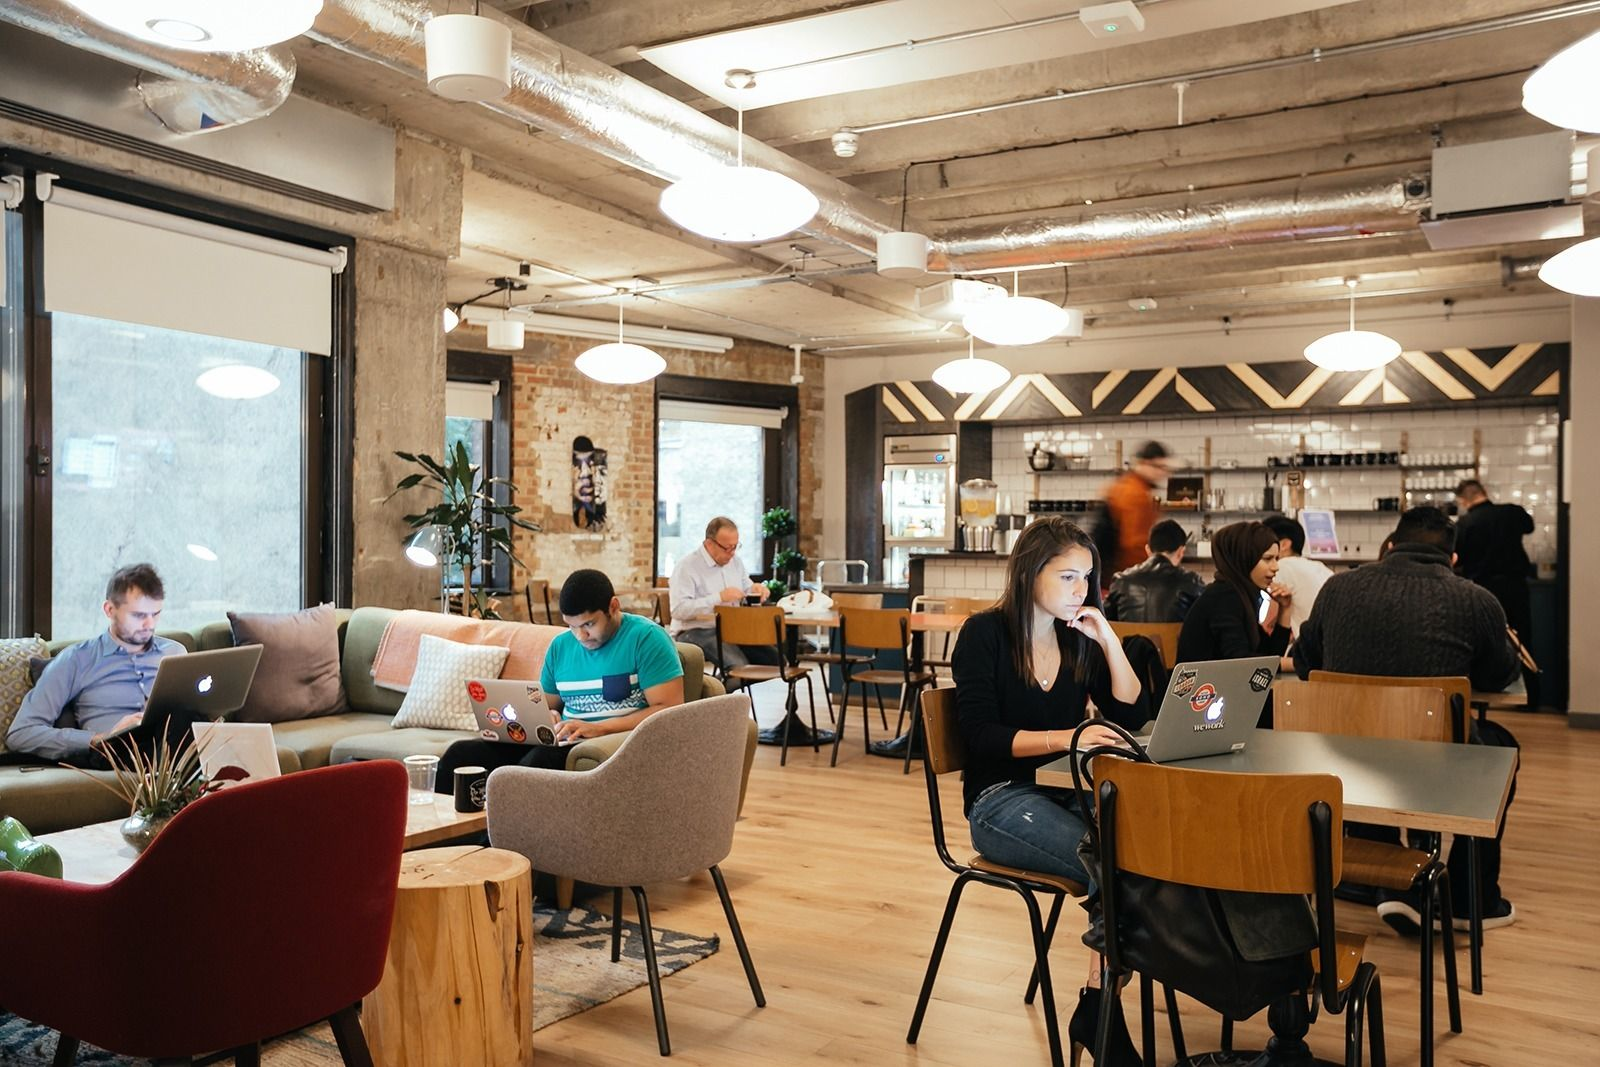 Inside wework s trendy coworking space in devonshire Coworking space design ideas